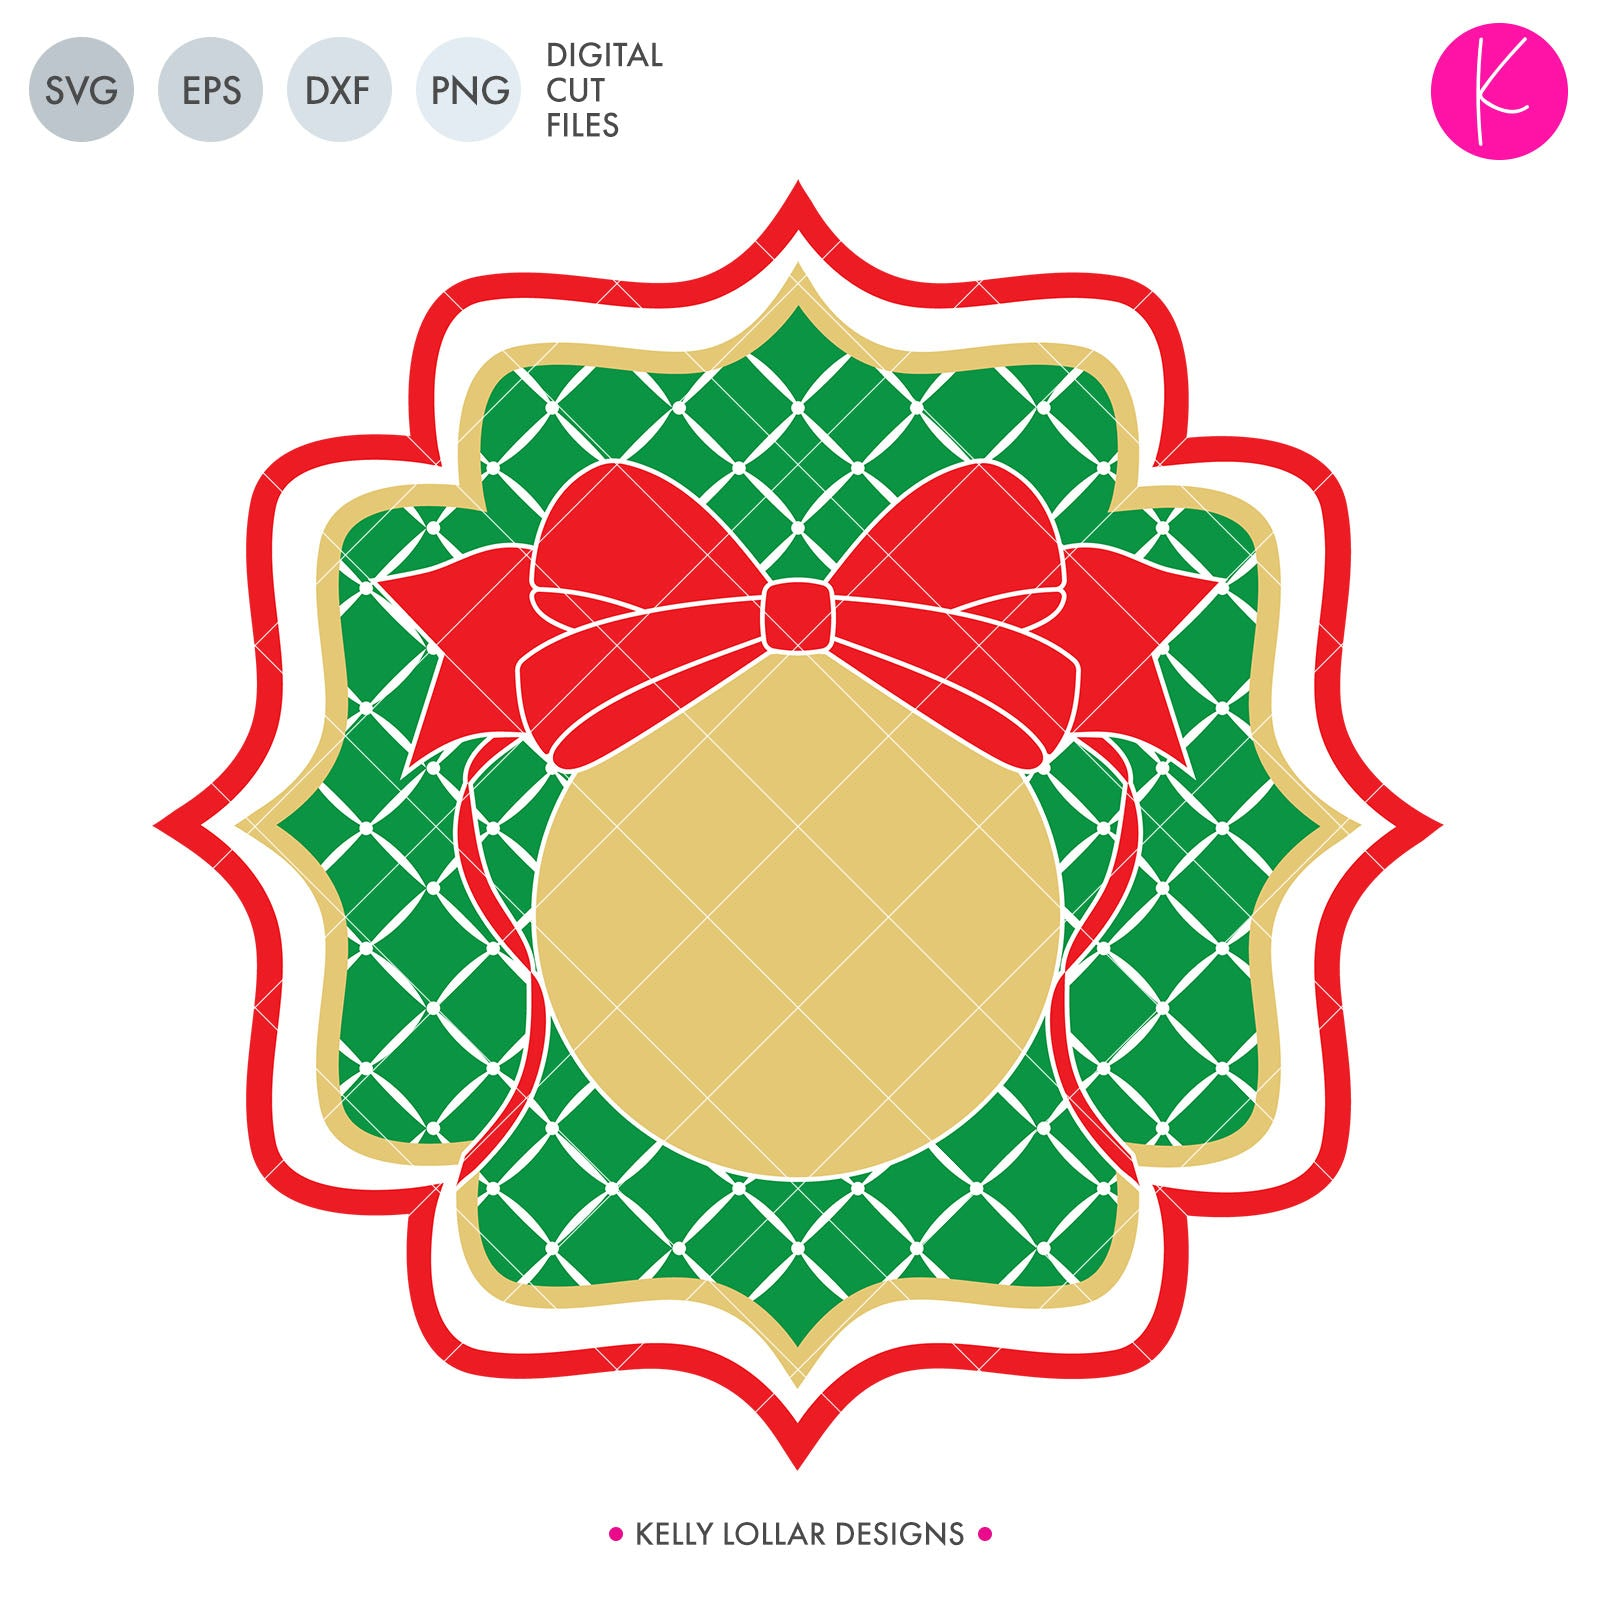 Monogram Svg Dxf Eps Png Cut Files Kelly Lollar Designs Tagged Winter